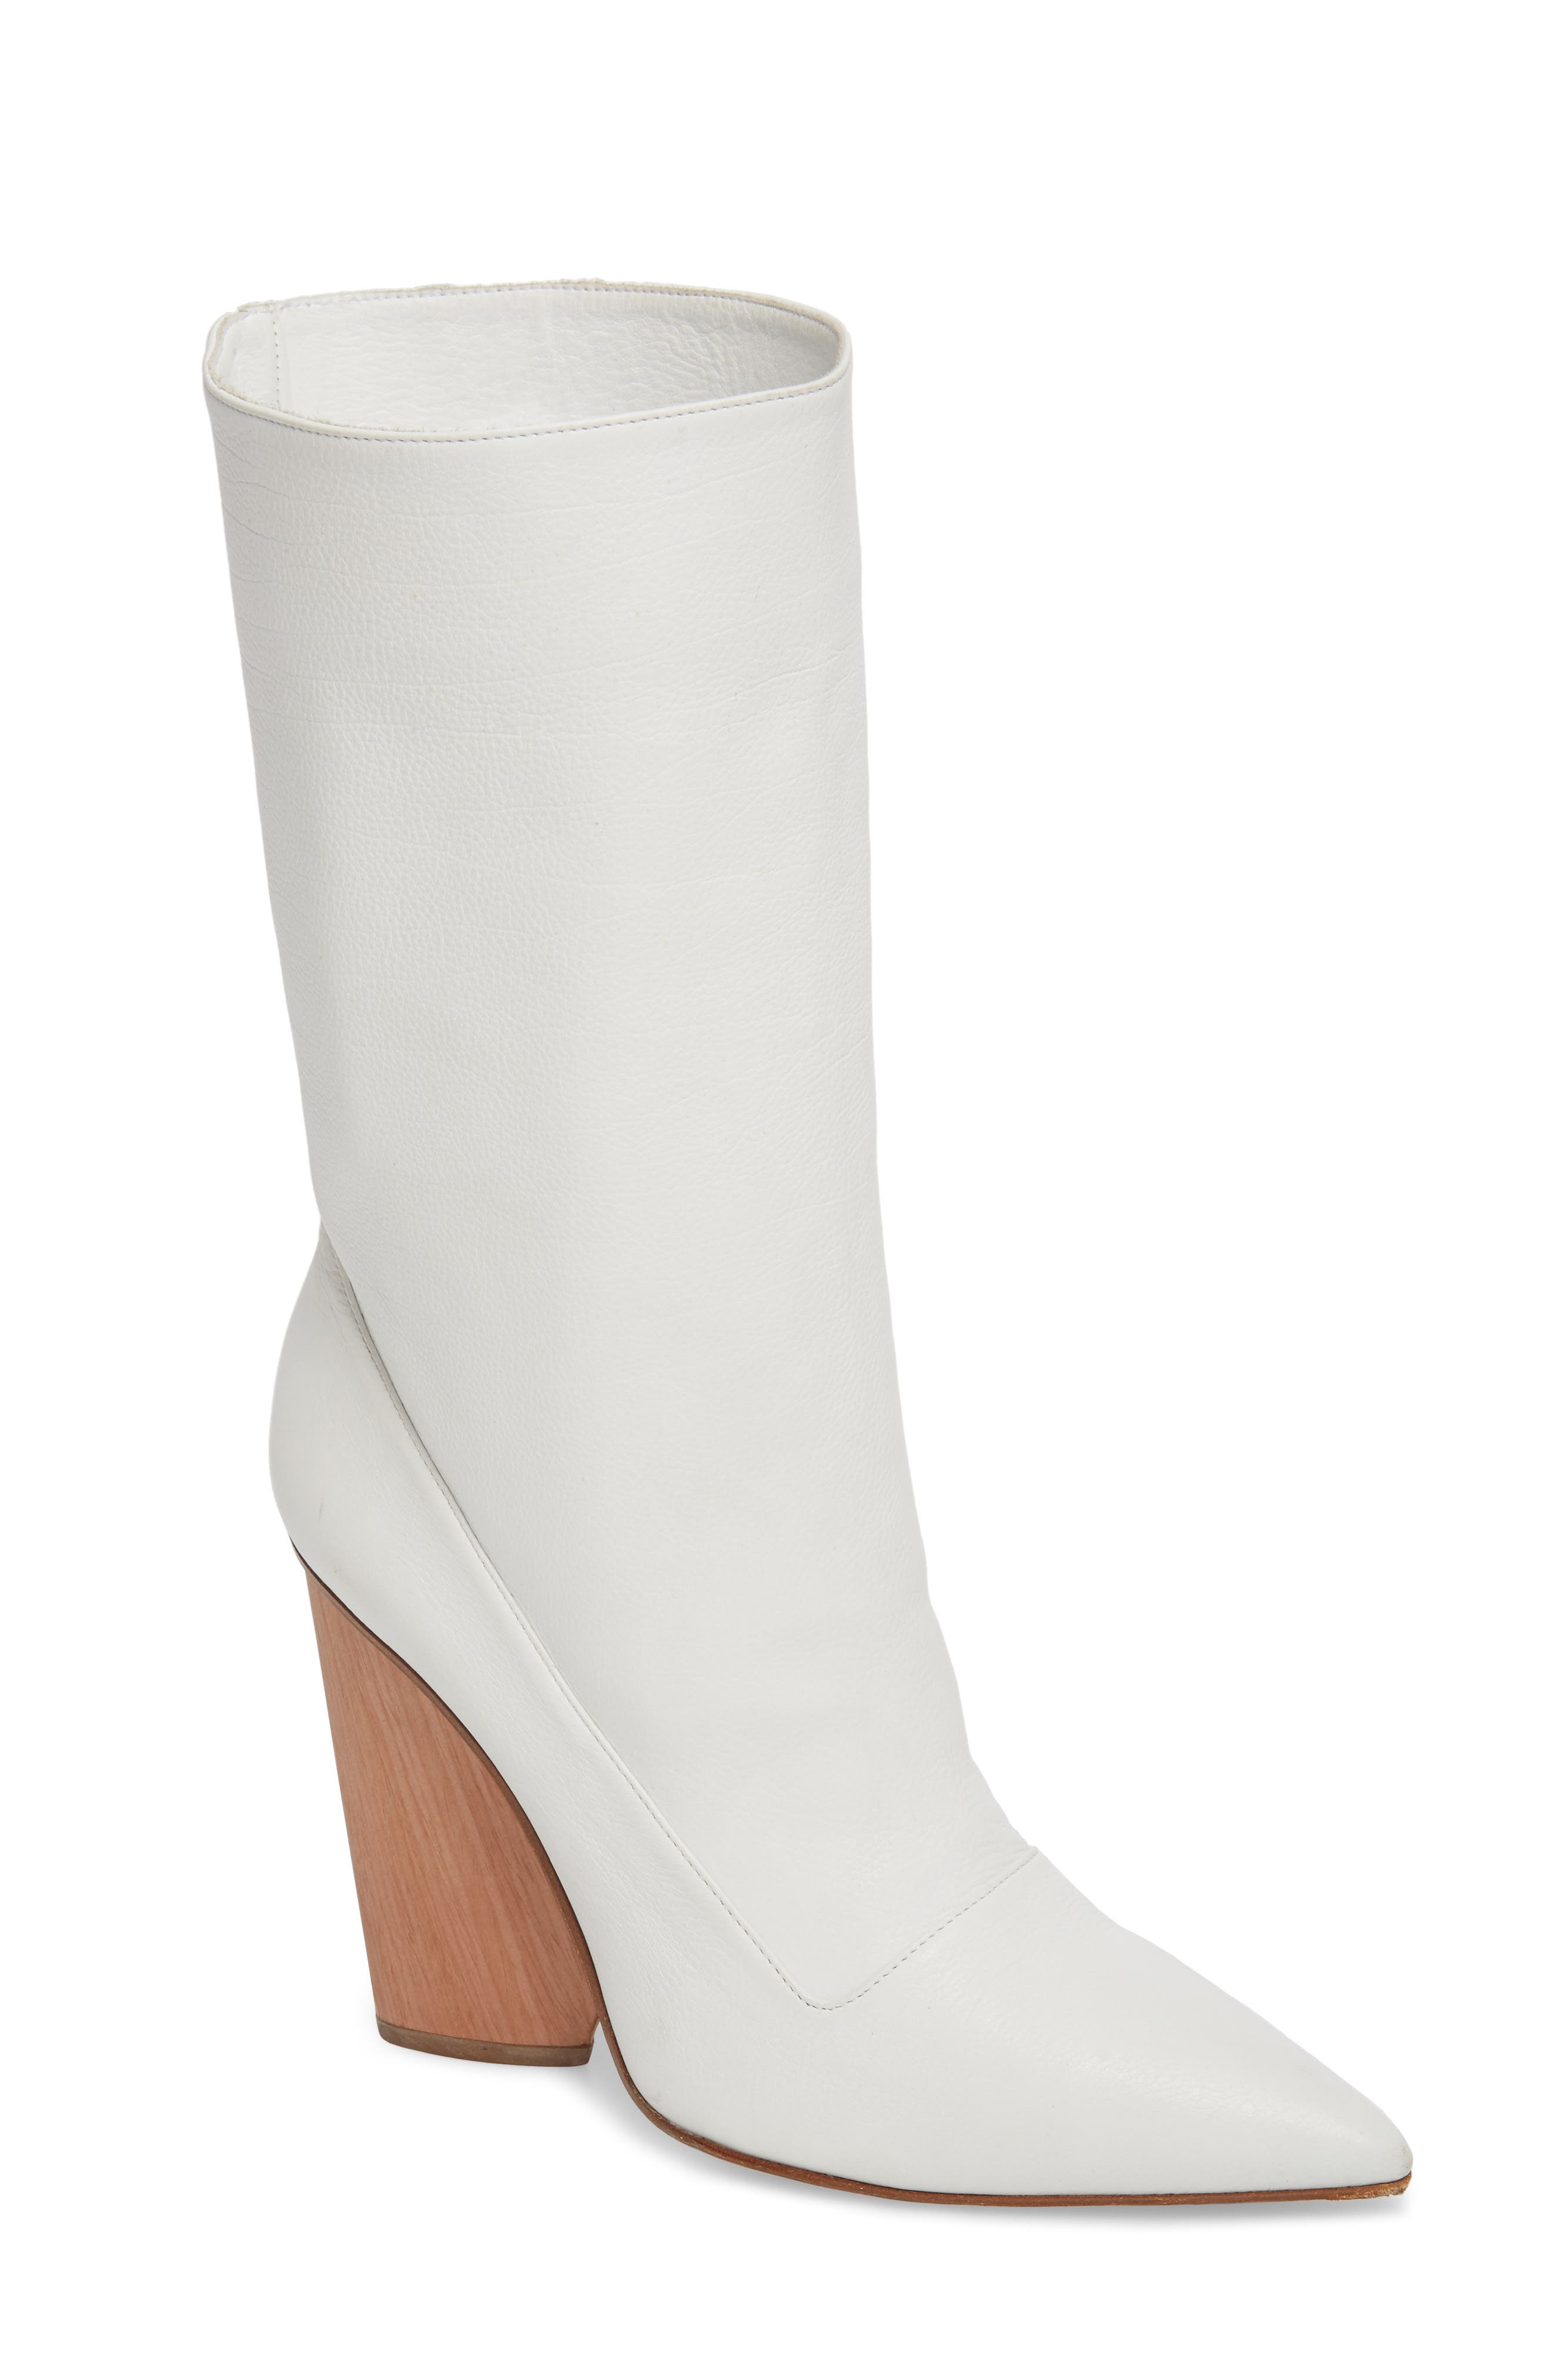 Judd Pointy Toe Boot,                         Main,                         color, White